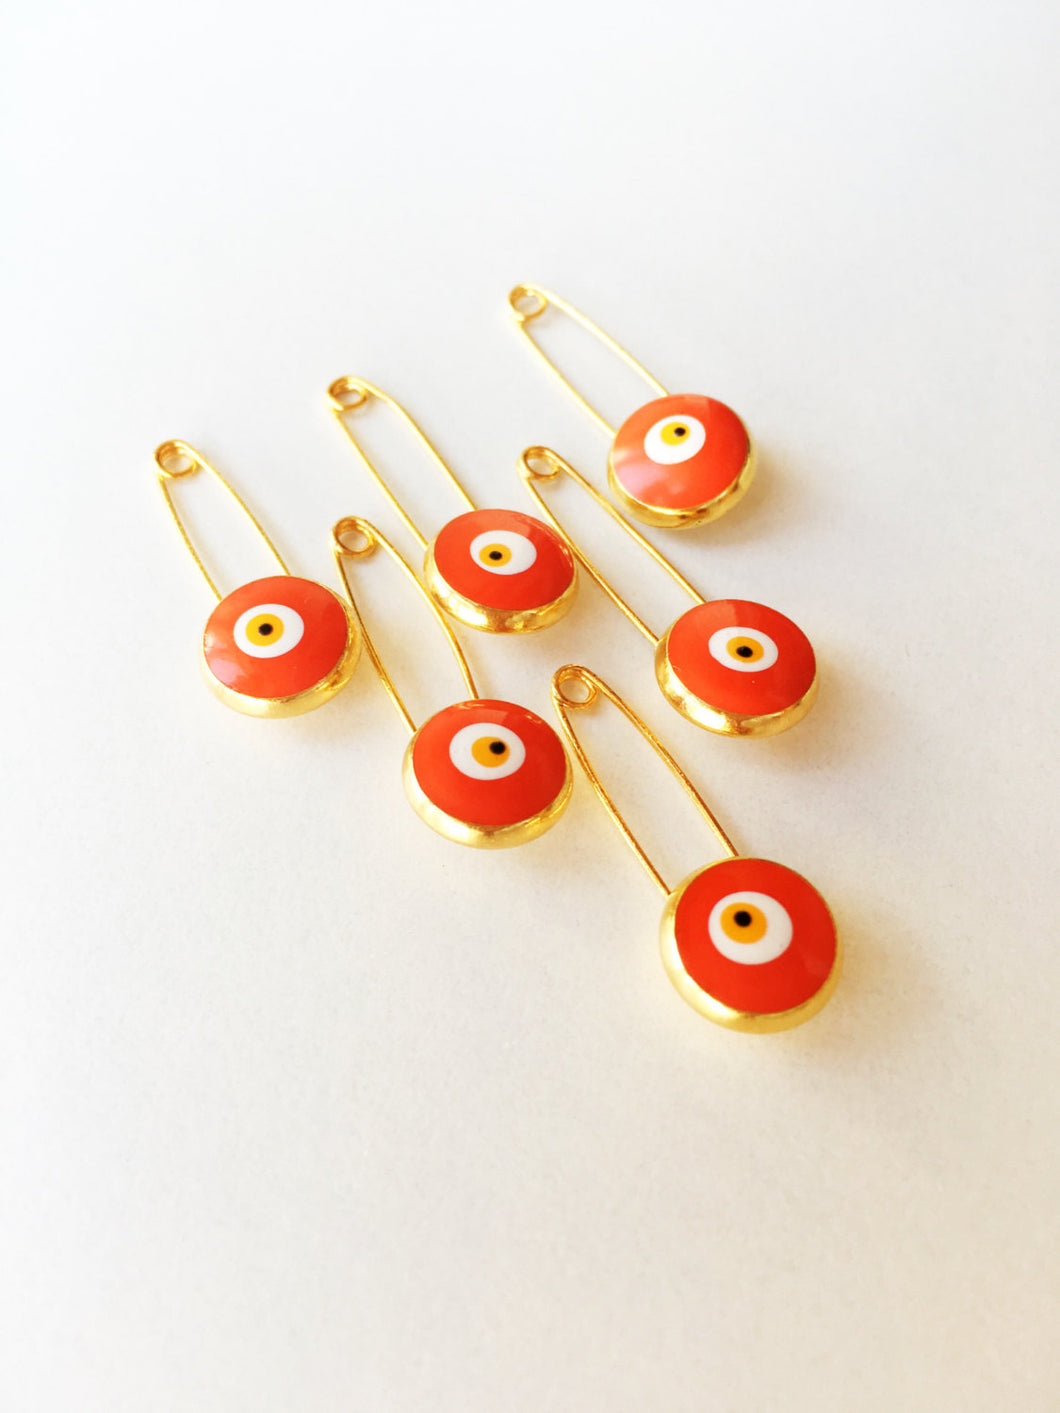 5 pcs Lucky evil eye safety pin, protection for baby, gold plated evil eye pins - Evileyefavor